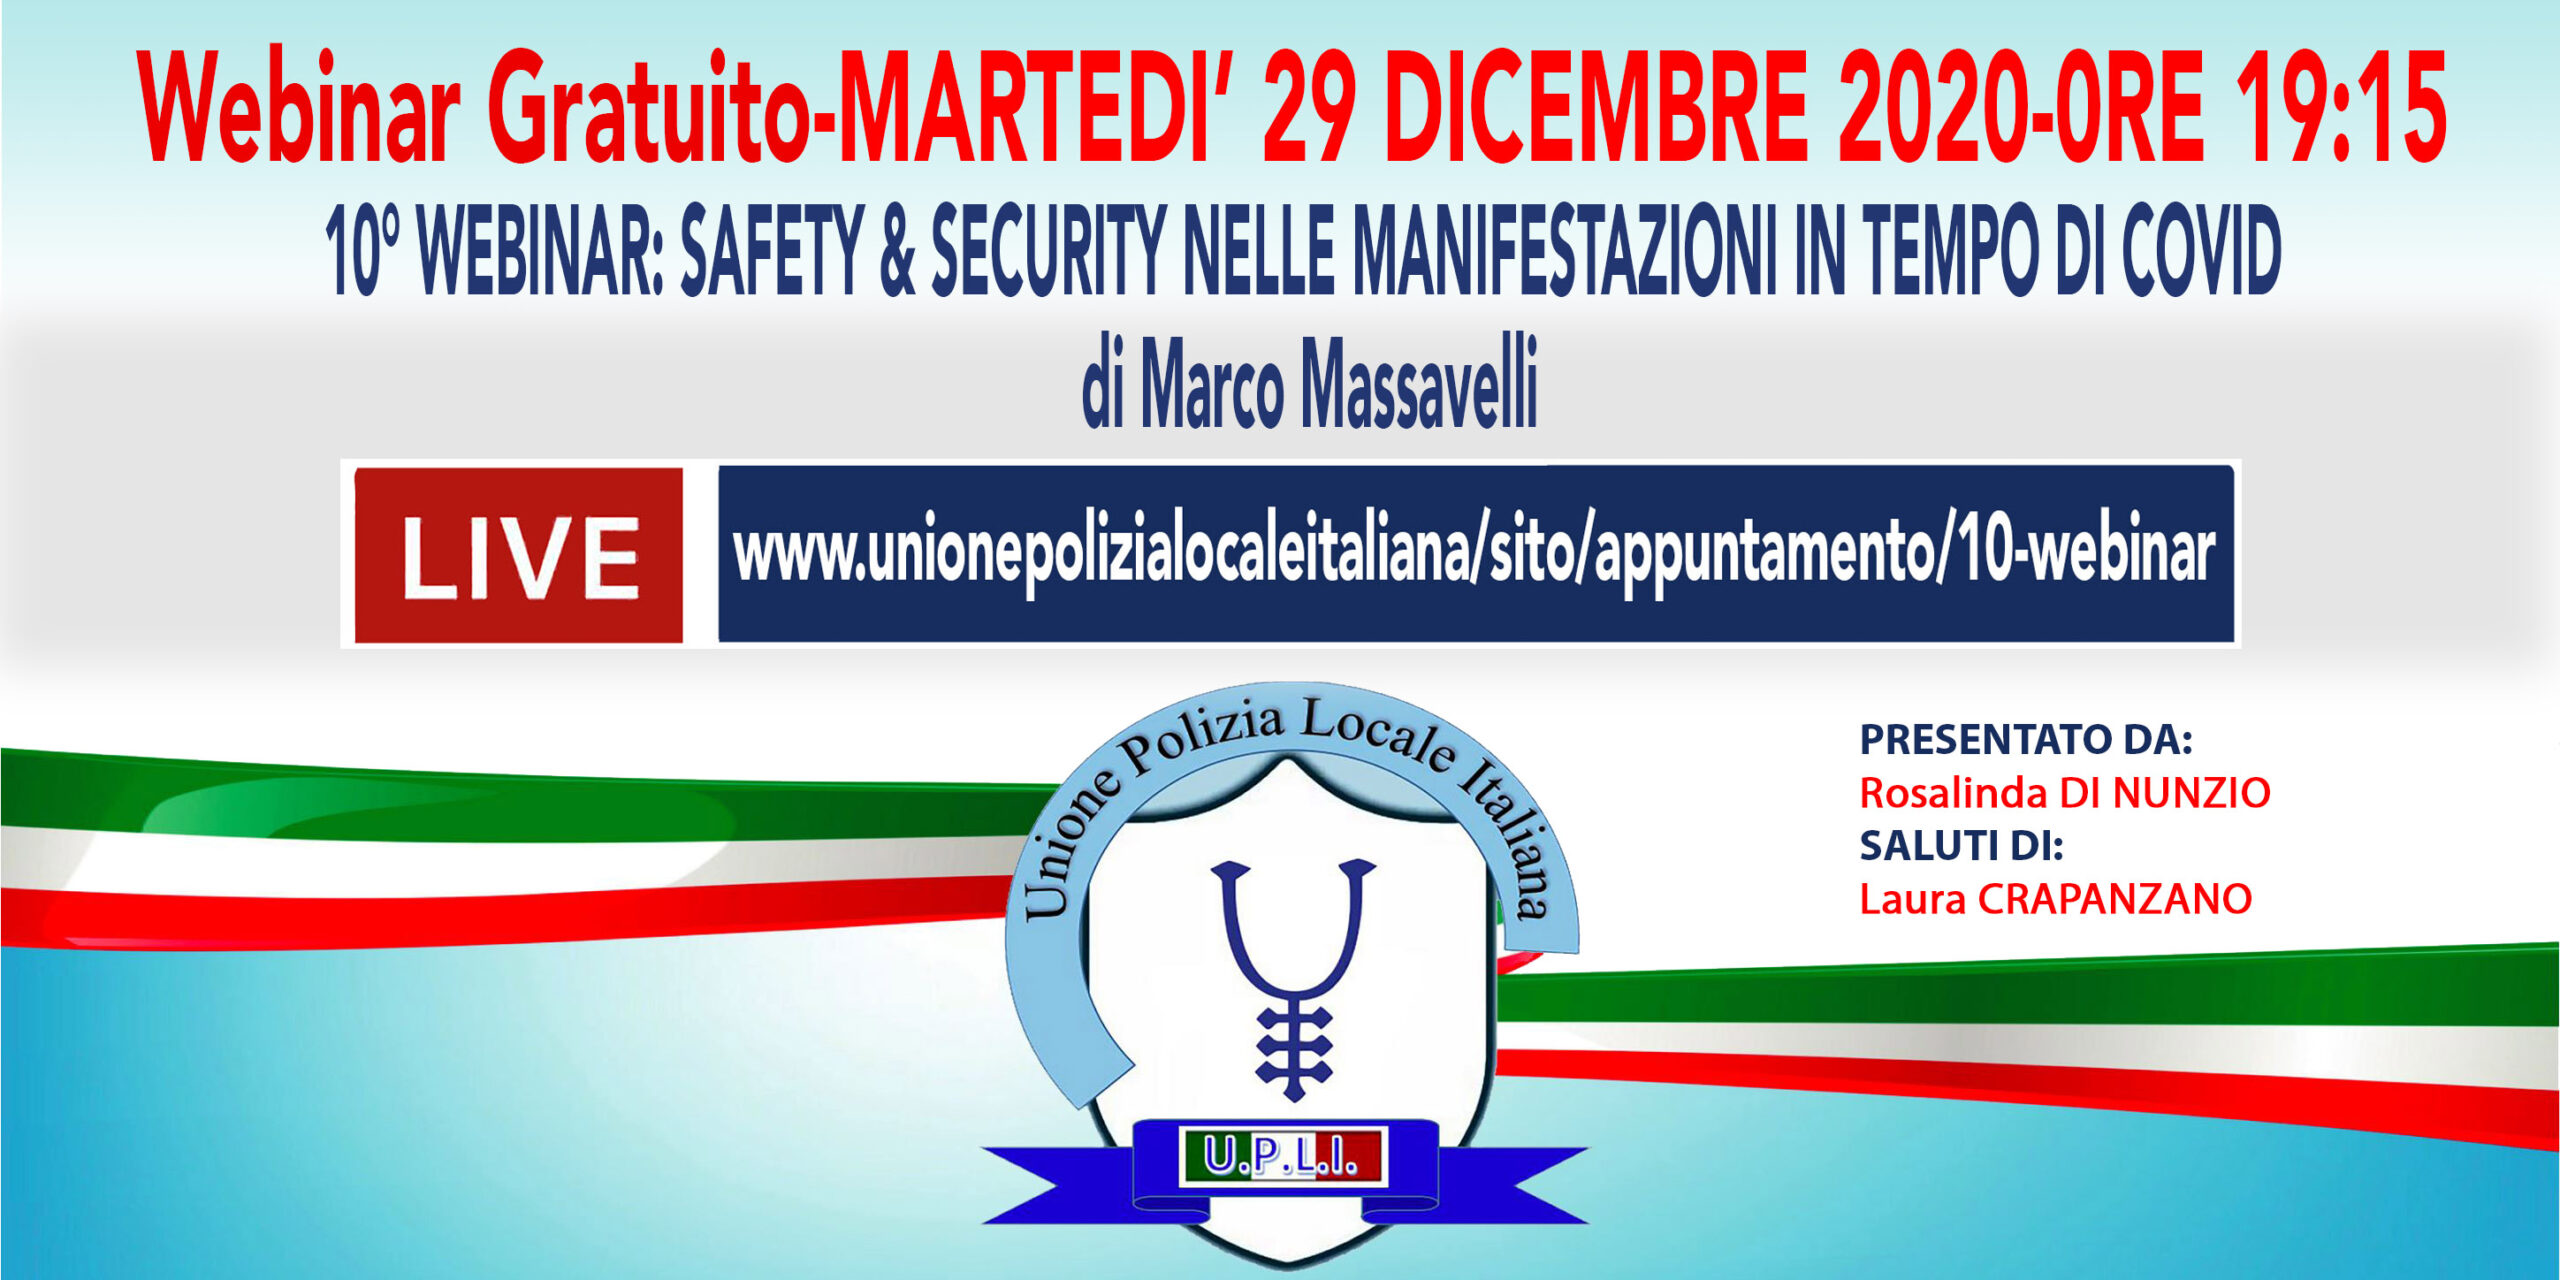 10° WEBINAR UPLI: SAFETY & SECURITY NELLE MANIFESTAZIONI IN TEMPO DI COVID